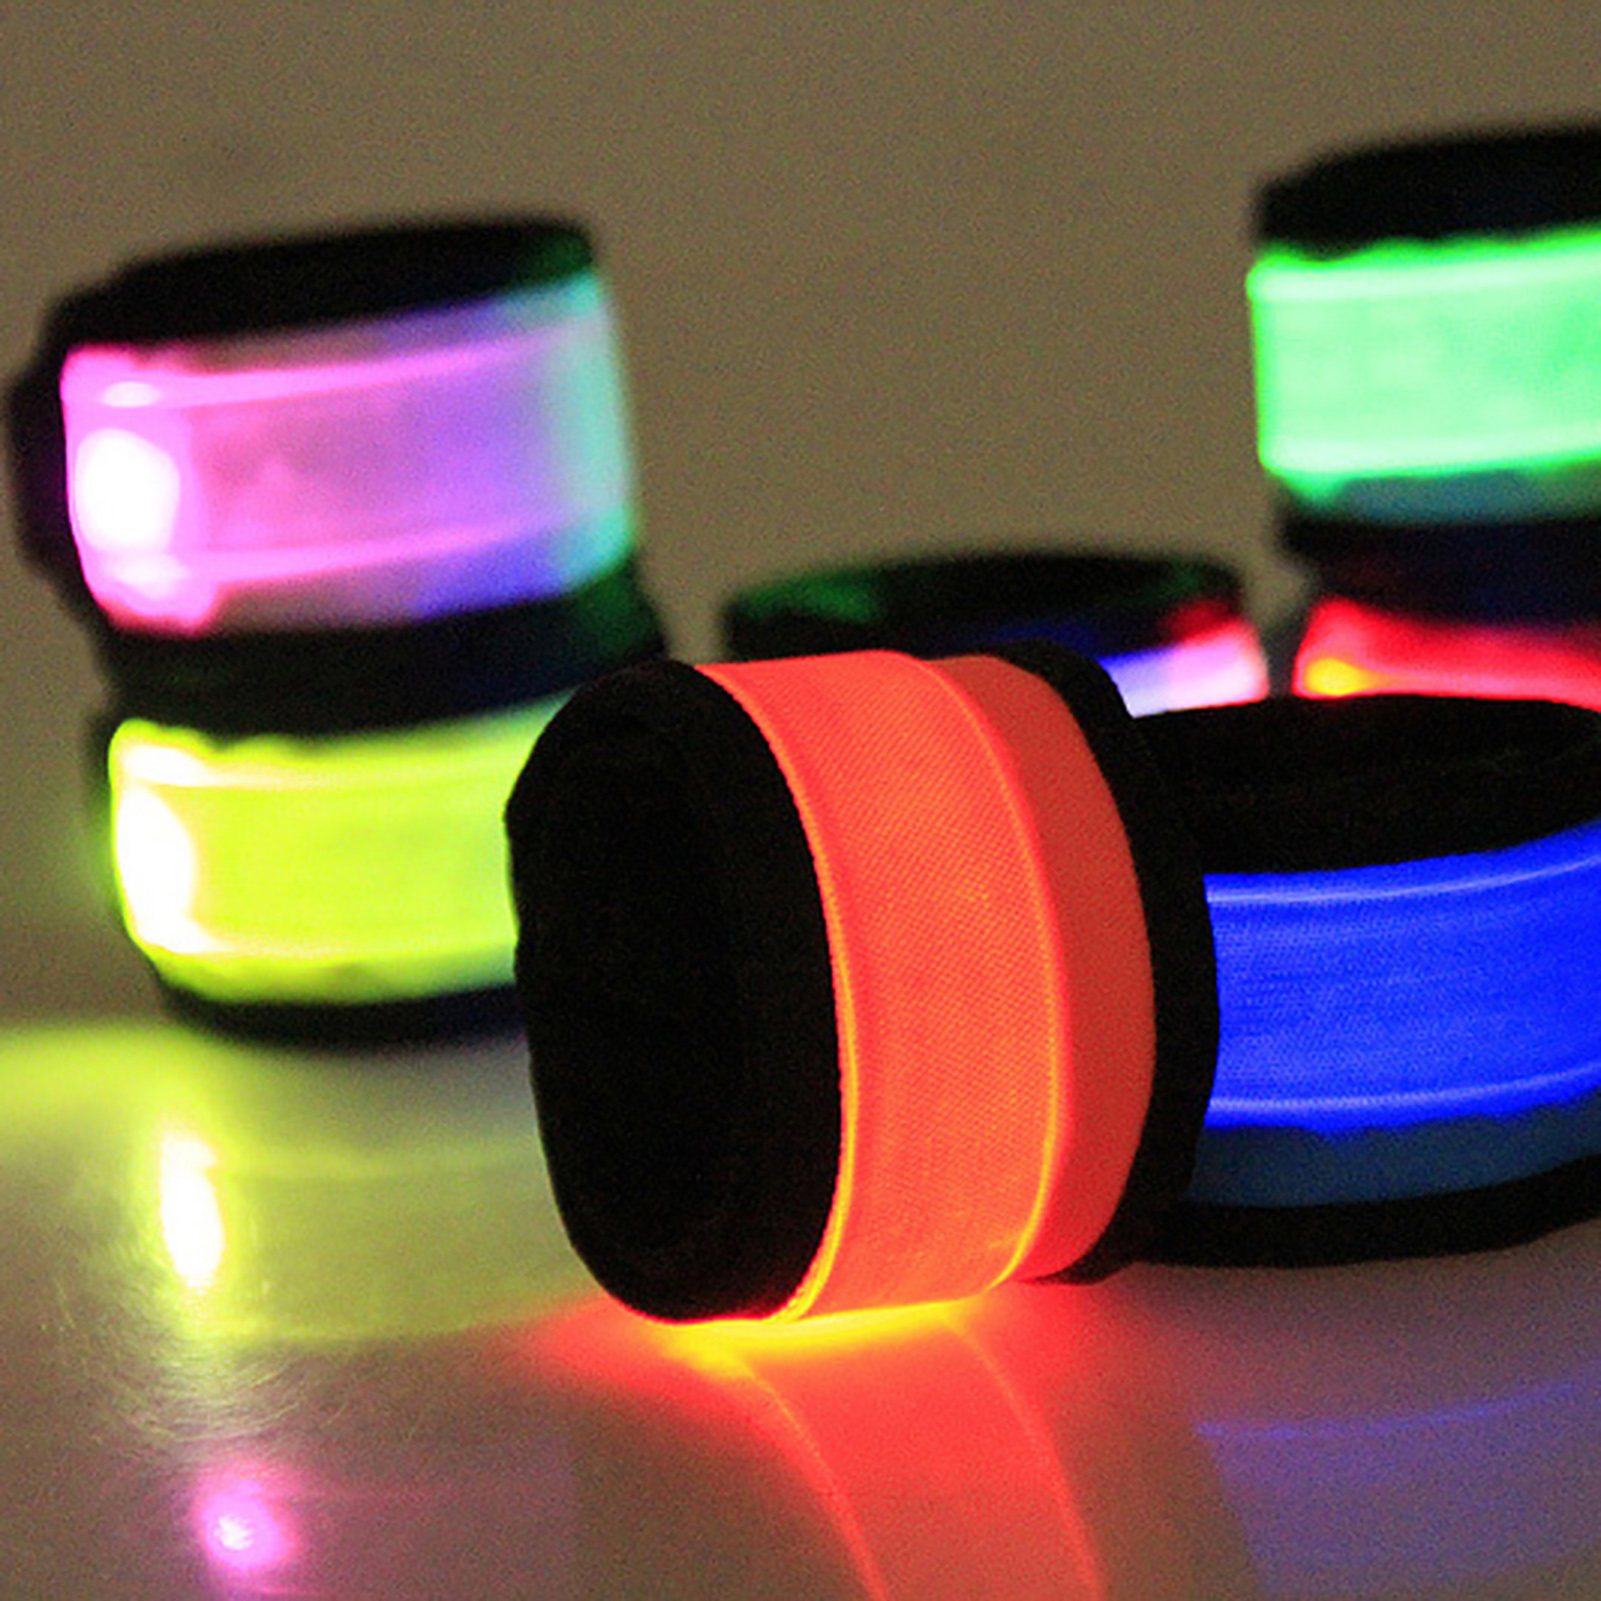 LED-Flashing-Light-Up-Glow-Bracelet-Wristband-Vocal-Concert-Party-Props-Gift-HOT thumbnail 9